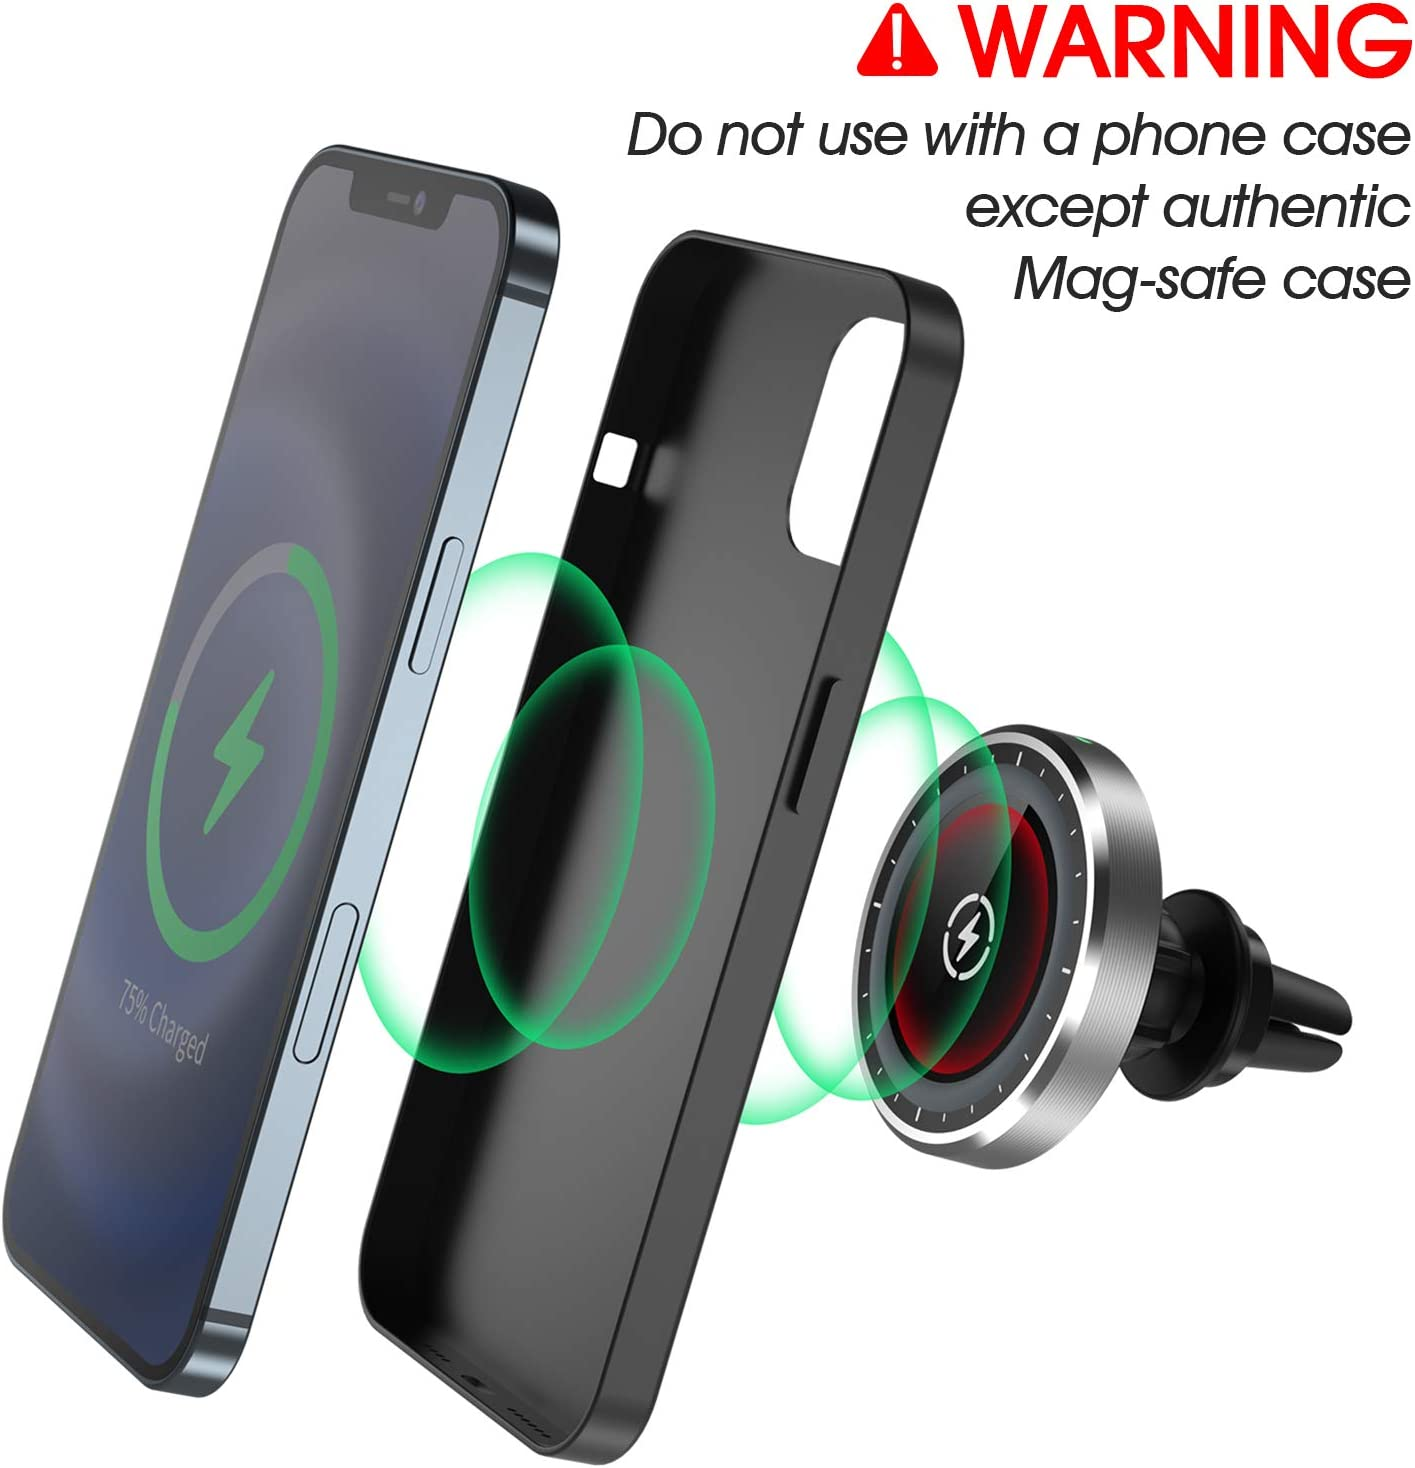 Magnetic Wireless Car Charger,Hohosb Mag-Safe Wireless Car Charger Magnetic Attachment and Alignment Compatible with iPhone 12//12 Pro//12 mini//12 Pro Max Air Vent Car Mount -S8-Round-Silver